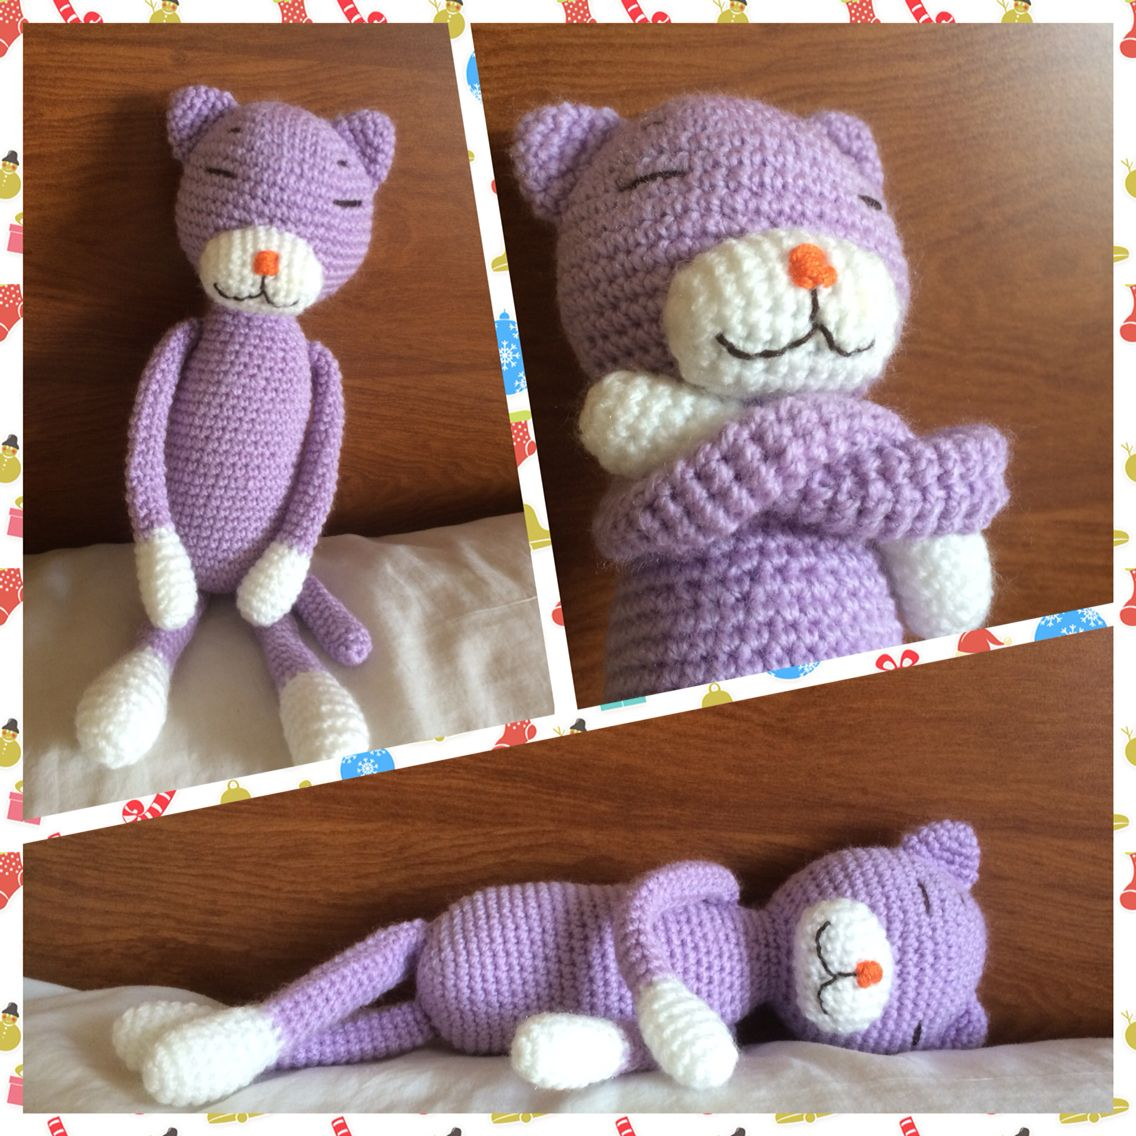 My first amigurumi: sleeping cat